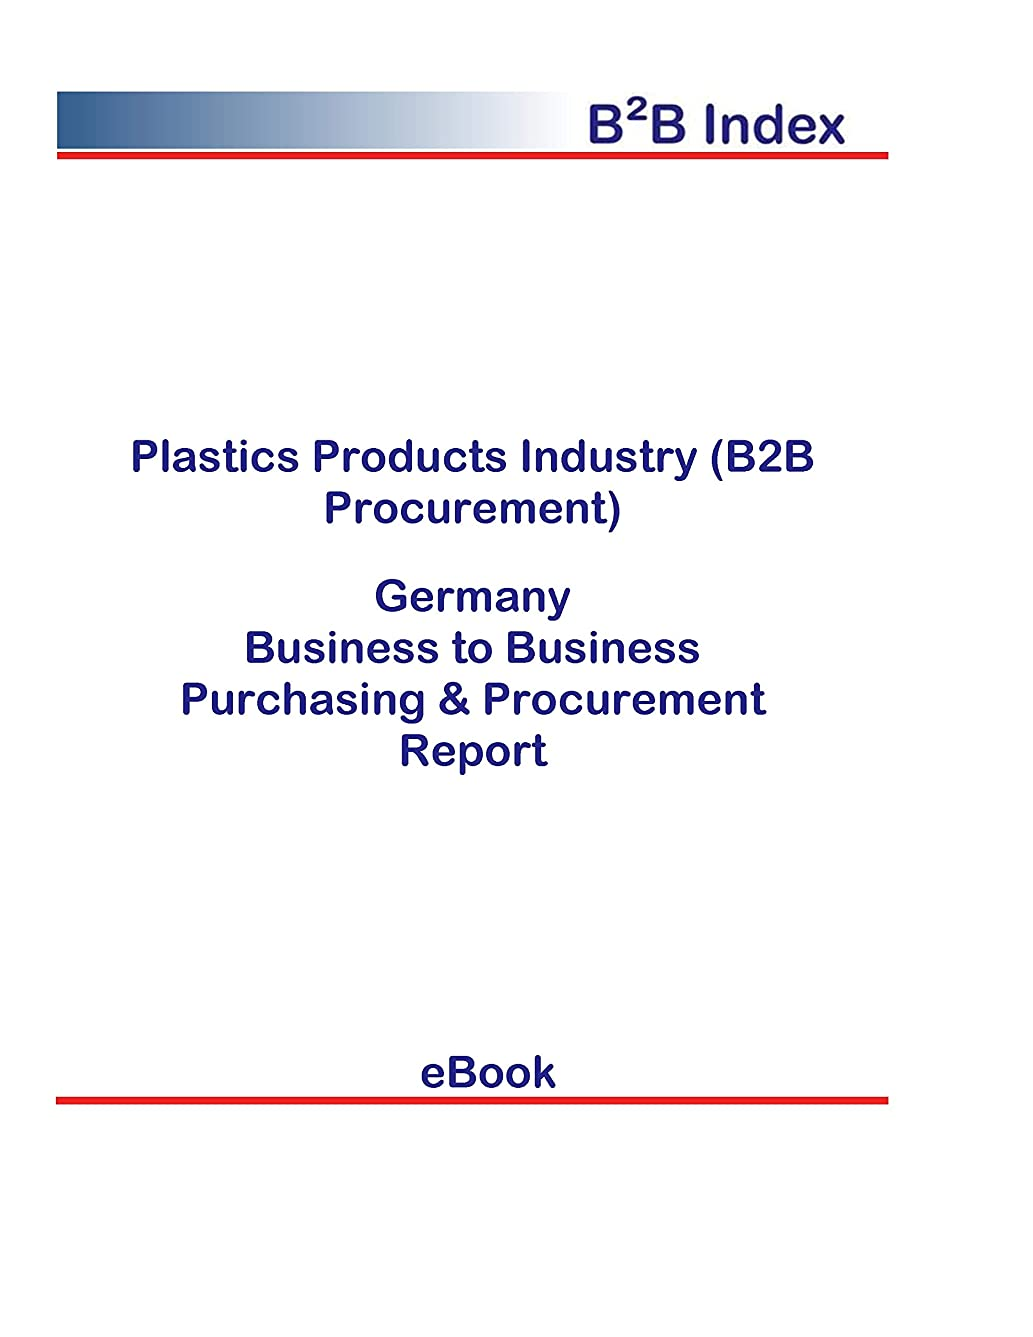 実験的分泌する半球Plastics Products Industry (B2B Procurement) in Germany: B2B Purchasing + Procurement Values (English Edition)